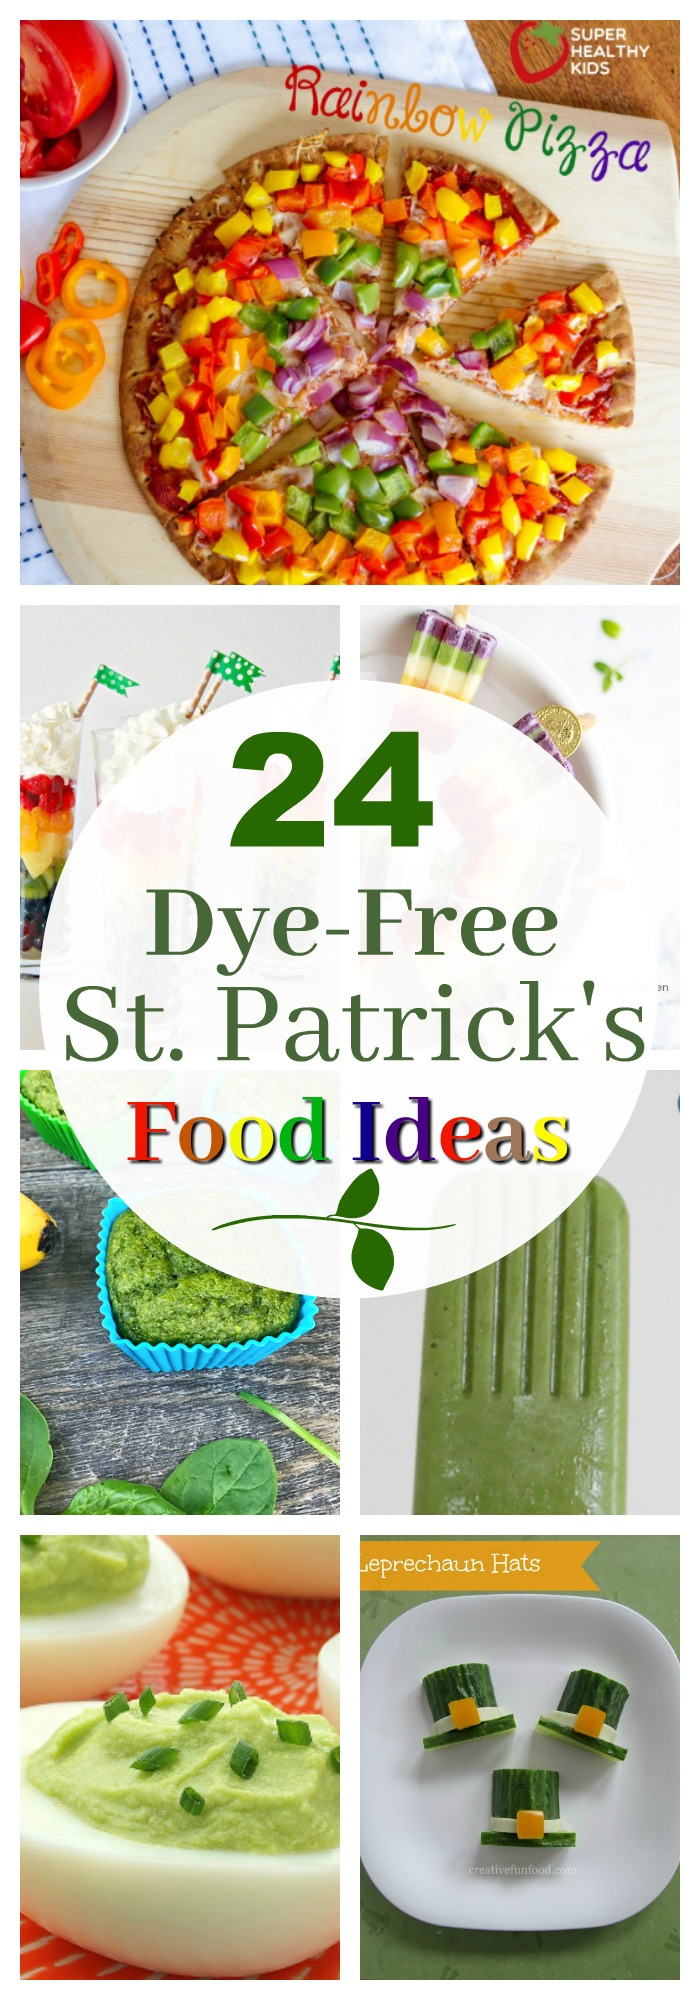 Healthy Holidays- dye-free st. patrick's day food